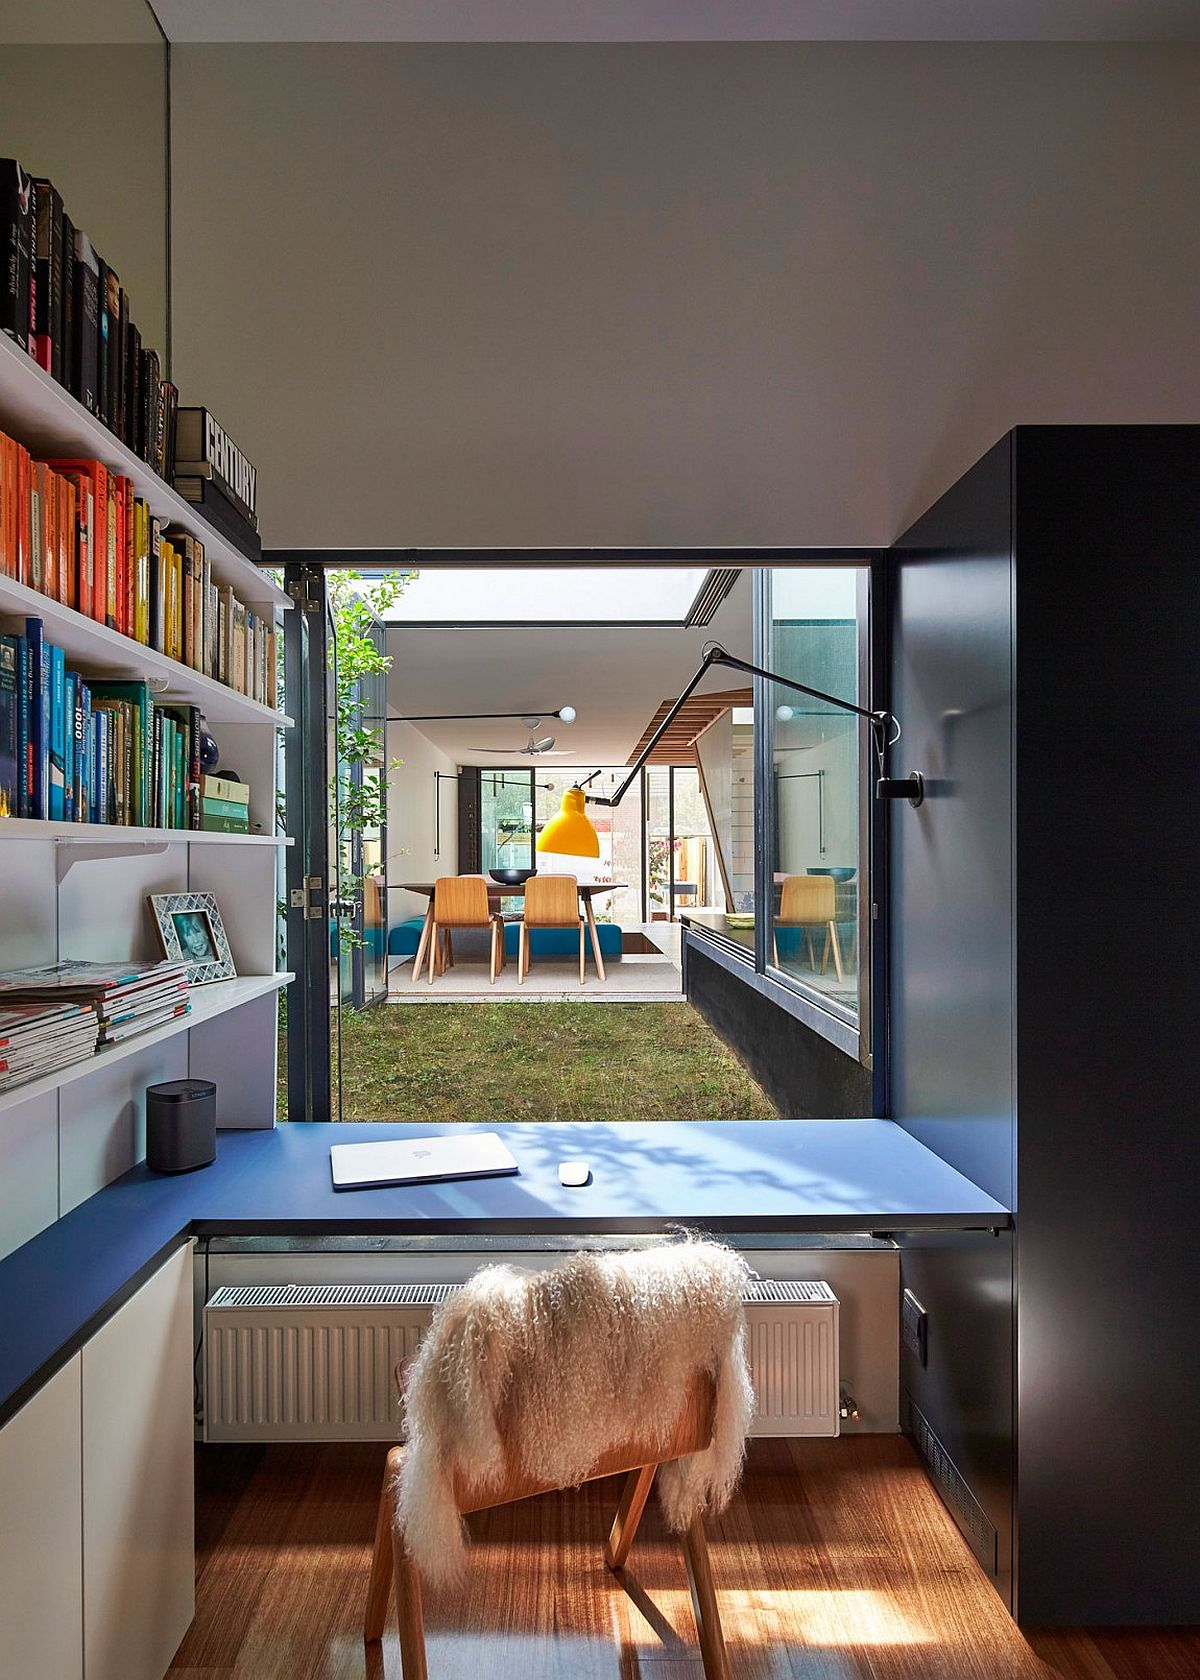 Home workspace connected with the small yard outside